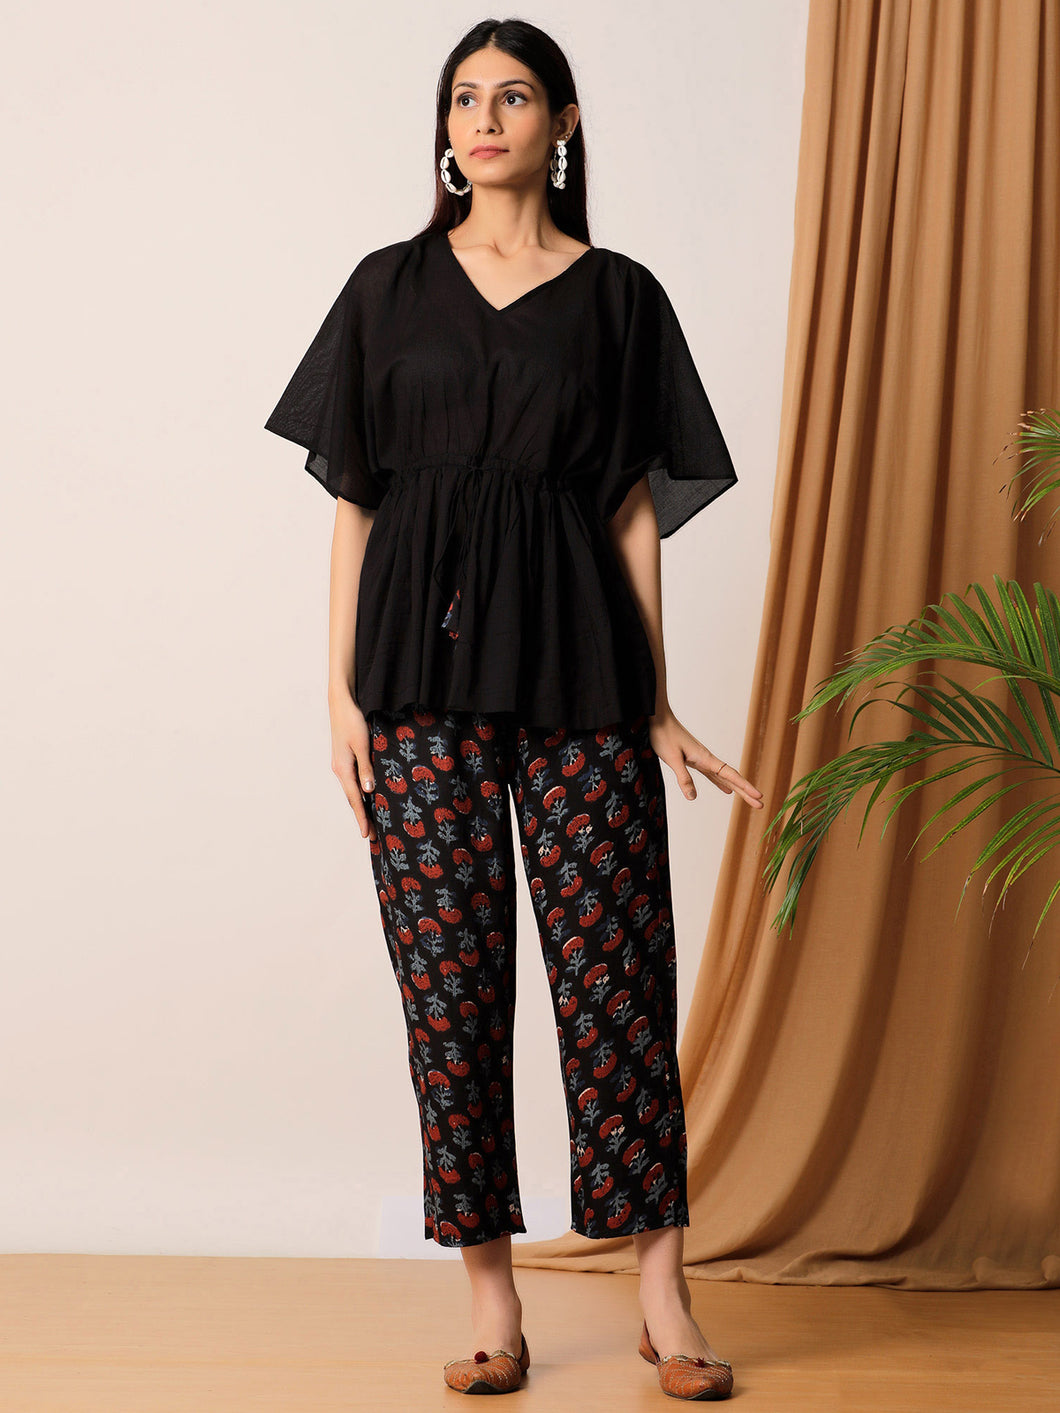 Black Solid Top And Hand Blocked Pant Set